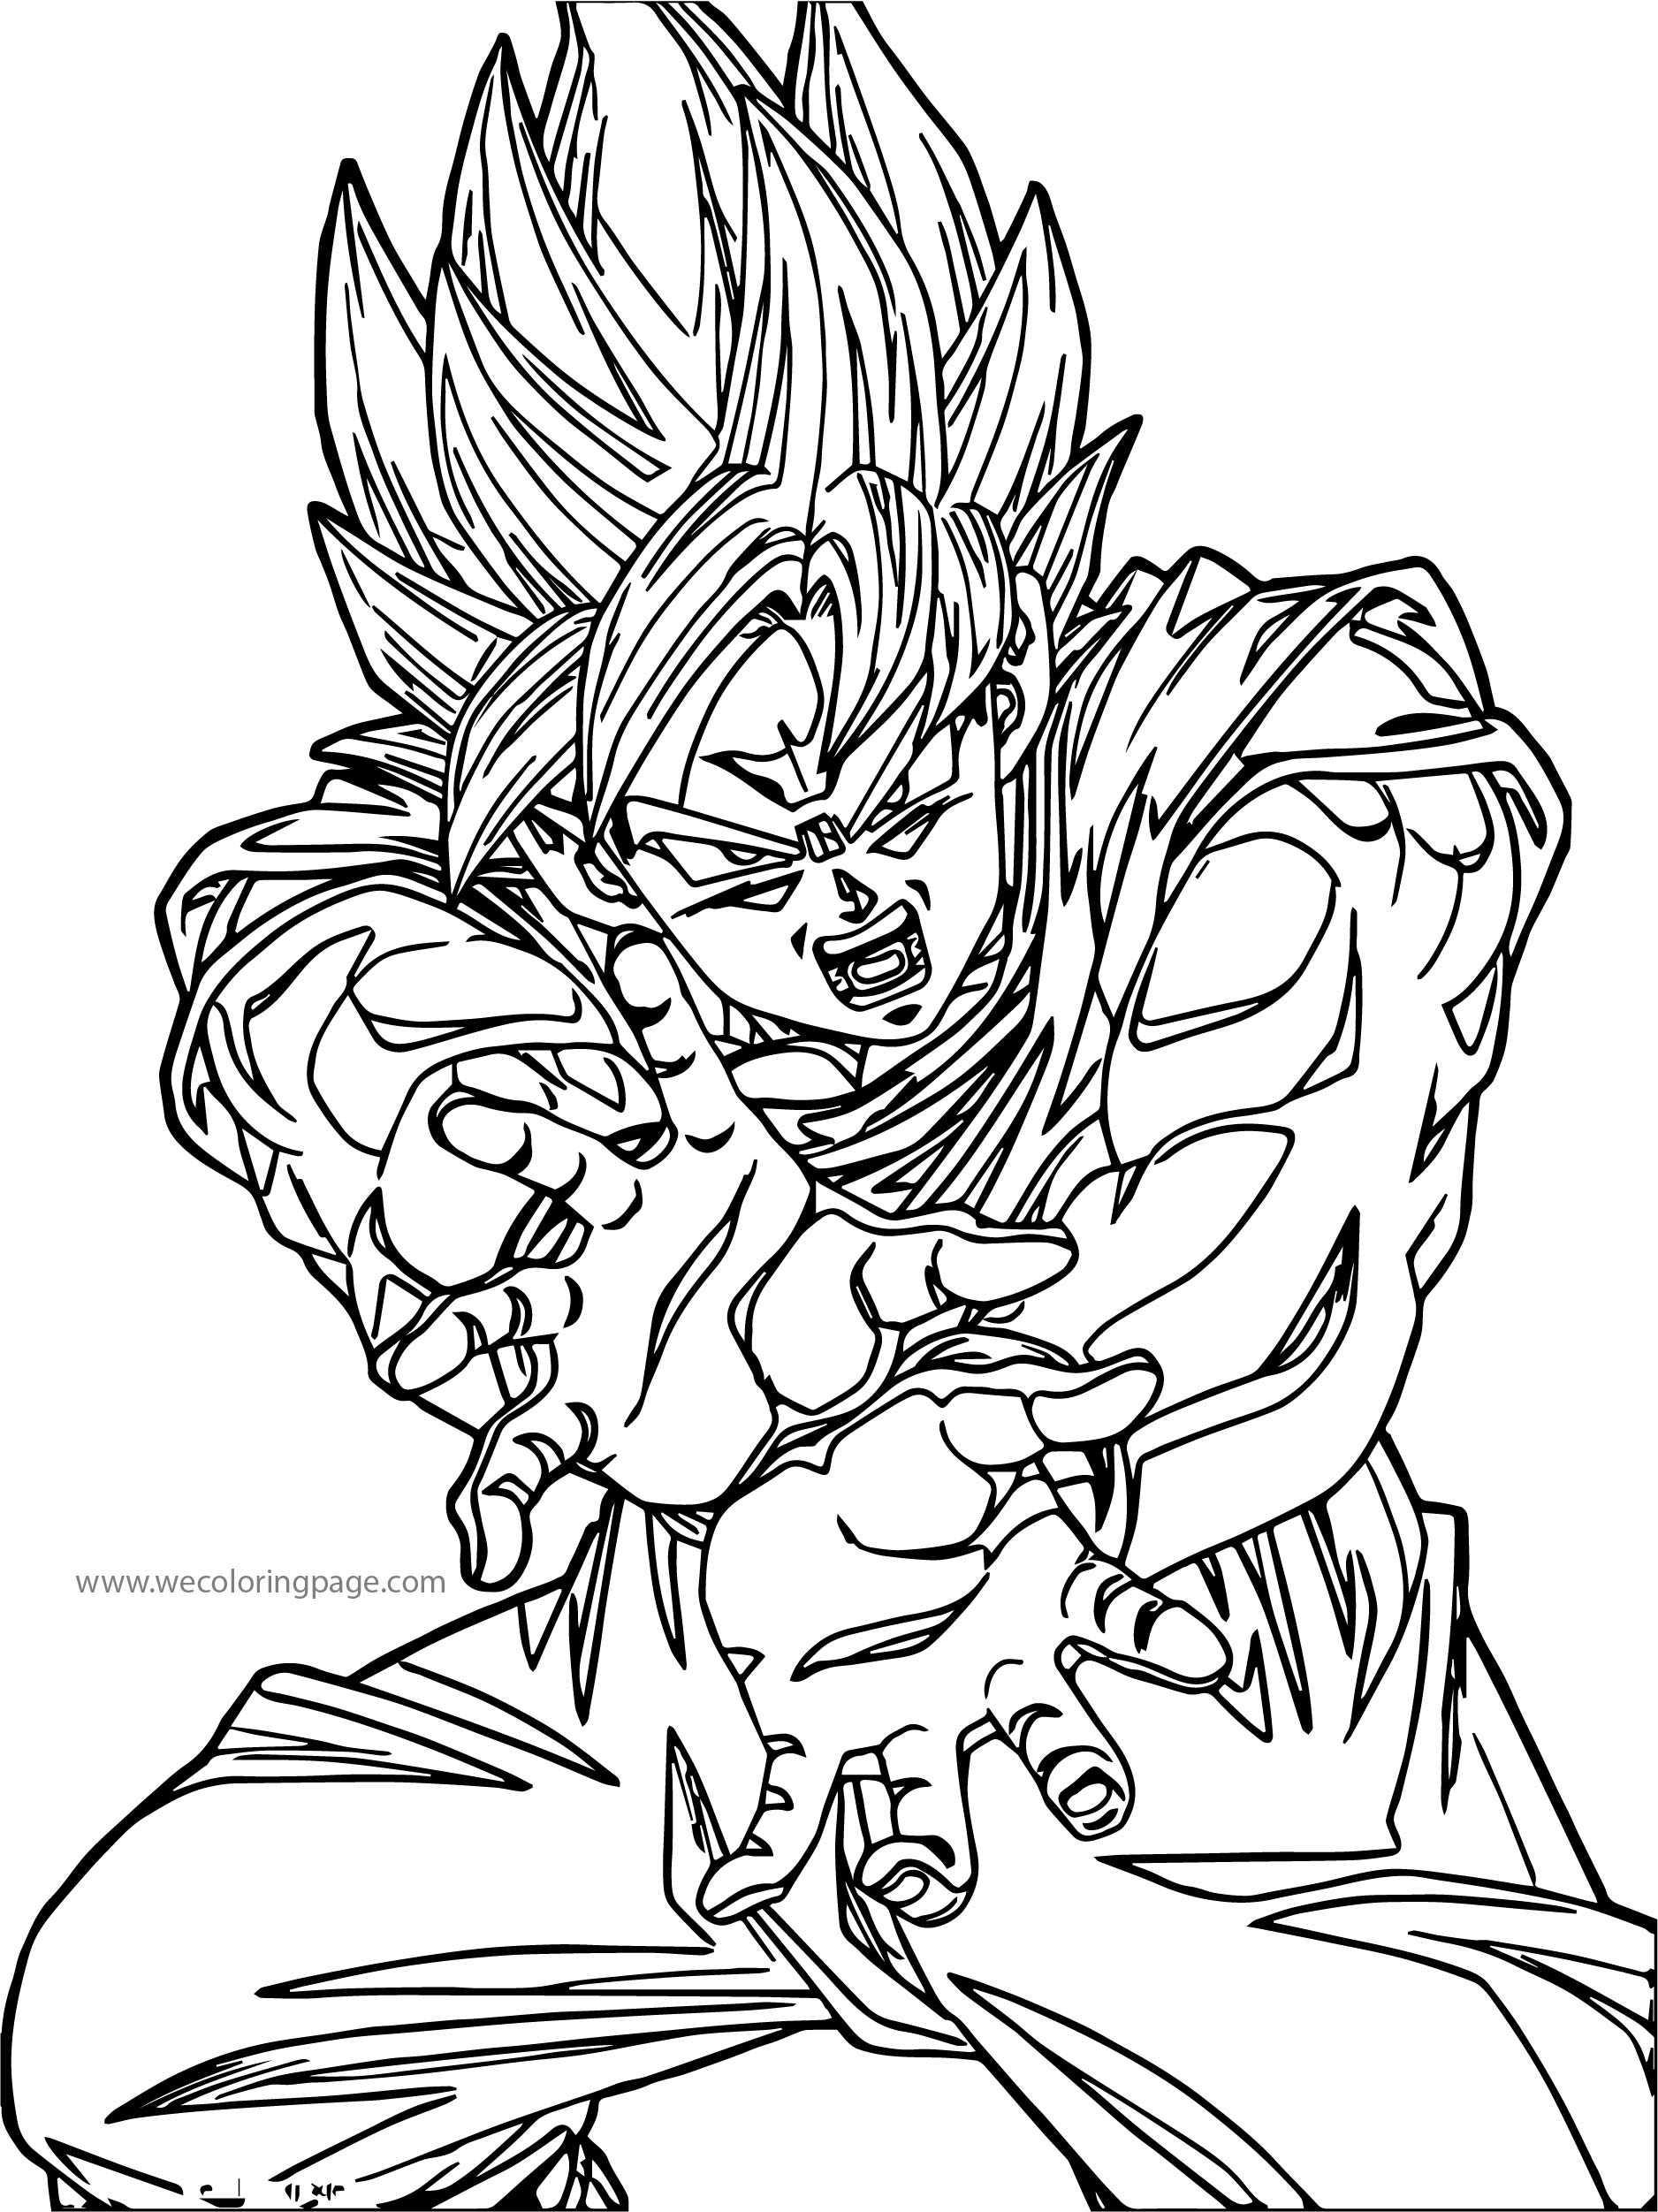 Goku Fire Kick Coloring Page